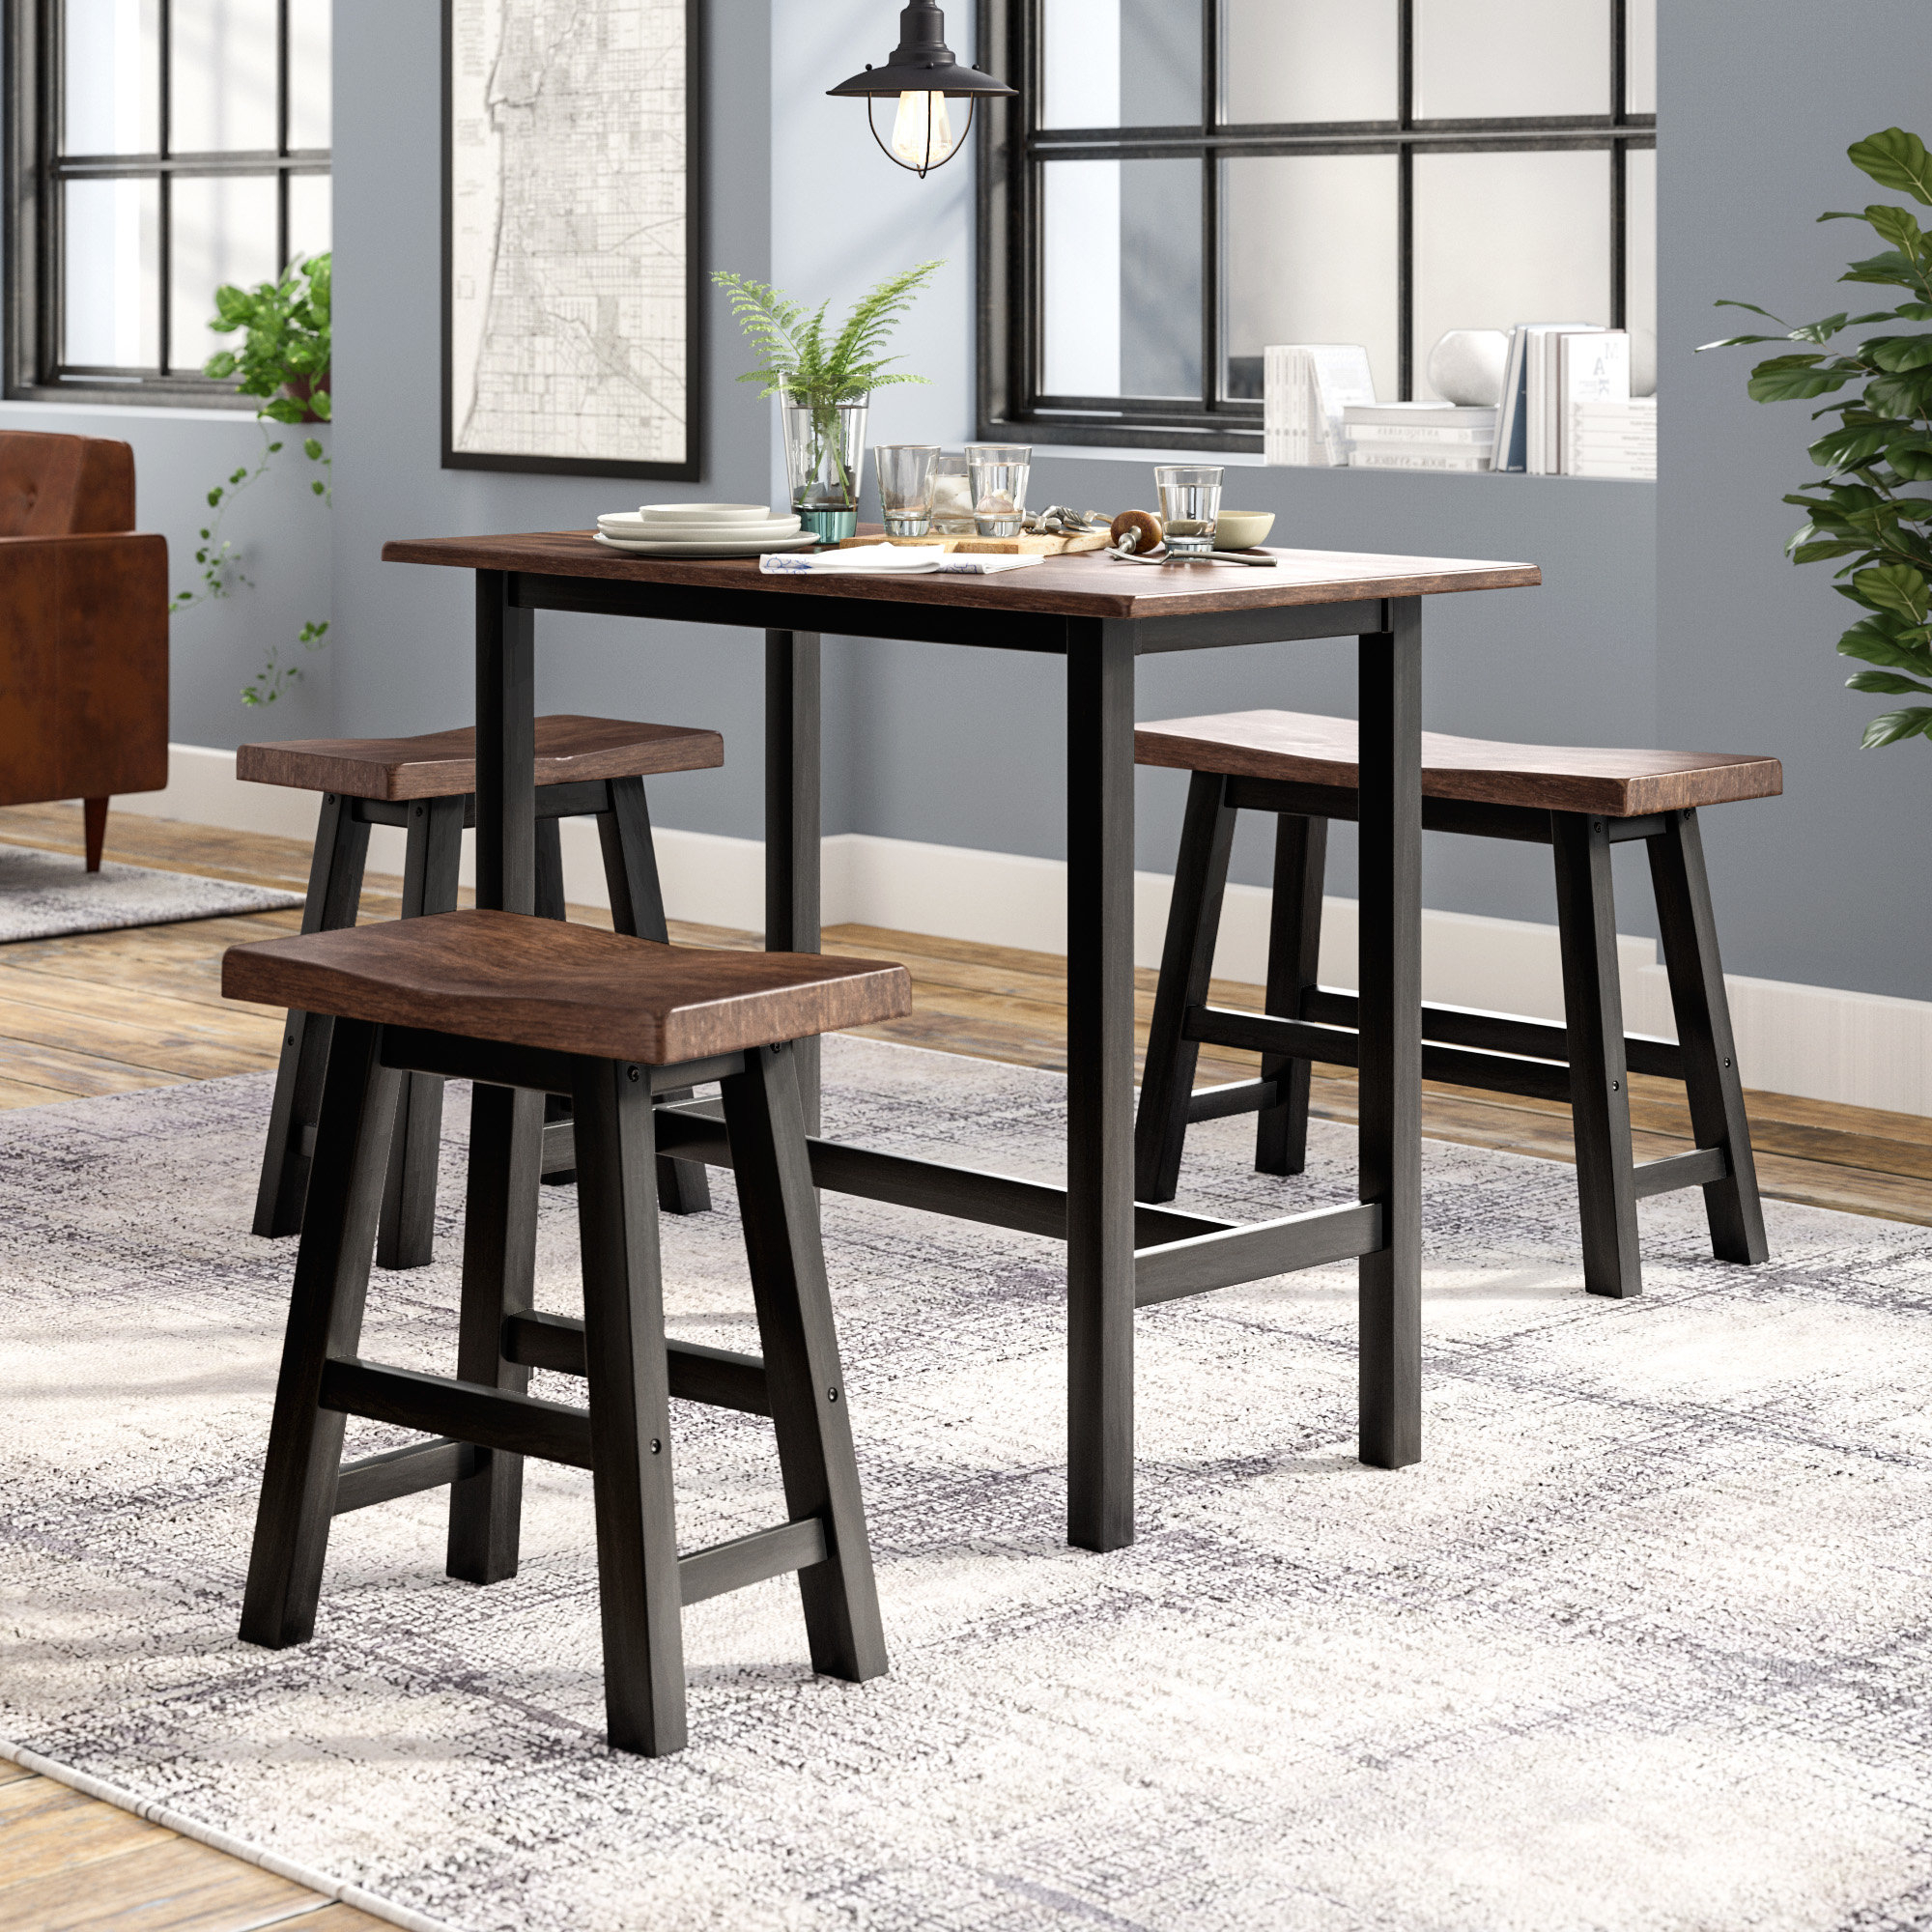 Wayfair Regarding 2020 Winsted 4 Piece Counter Height Dining Sets (View 4 of 25)